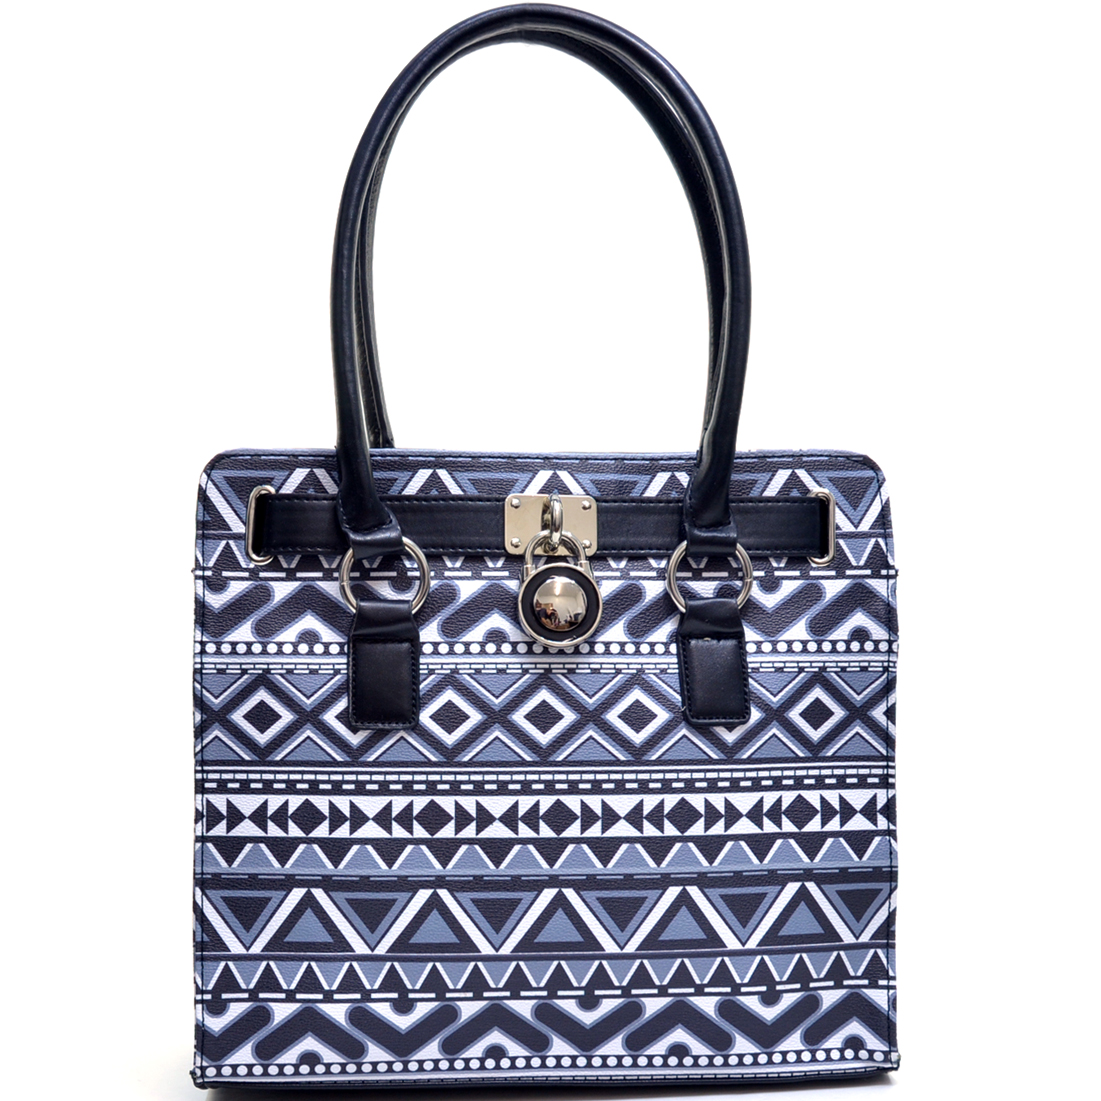 Aztec Print Tote Bag with Adjustable Top